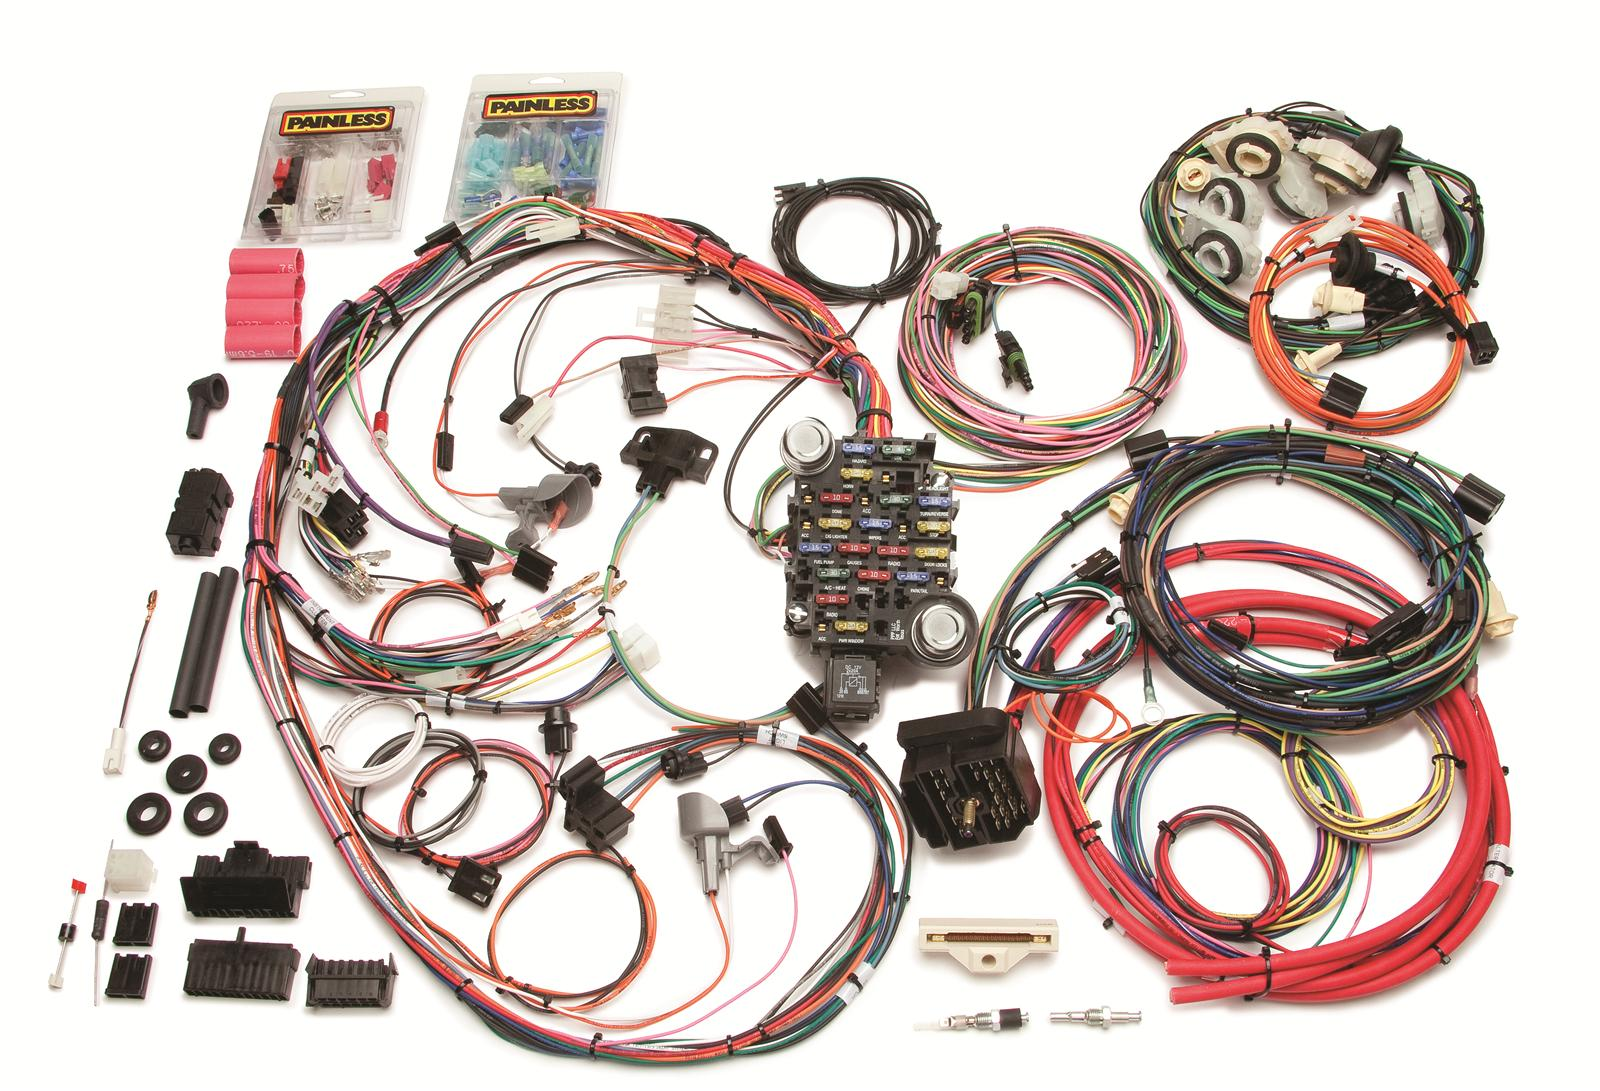 hight resolution of painless performance 26 circuit 1978 81 direct fit camaro harnesses dodge truck wiring harness kits 77 dodge truck wiring harness painless